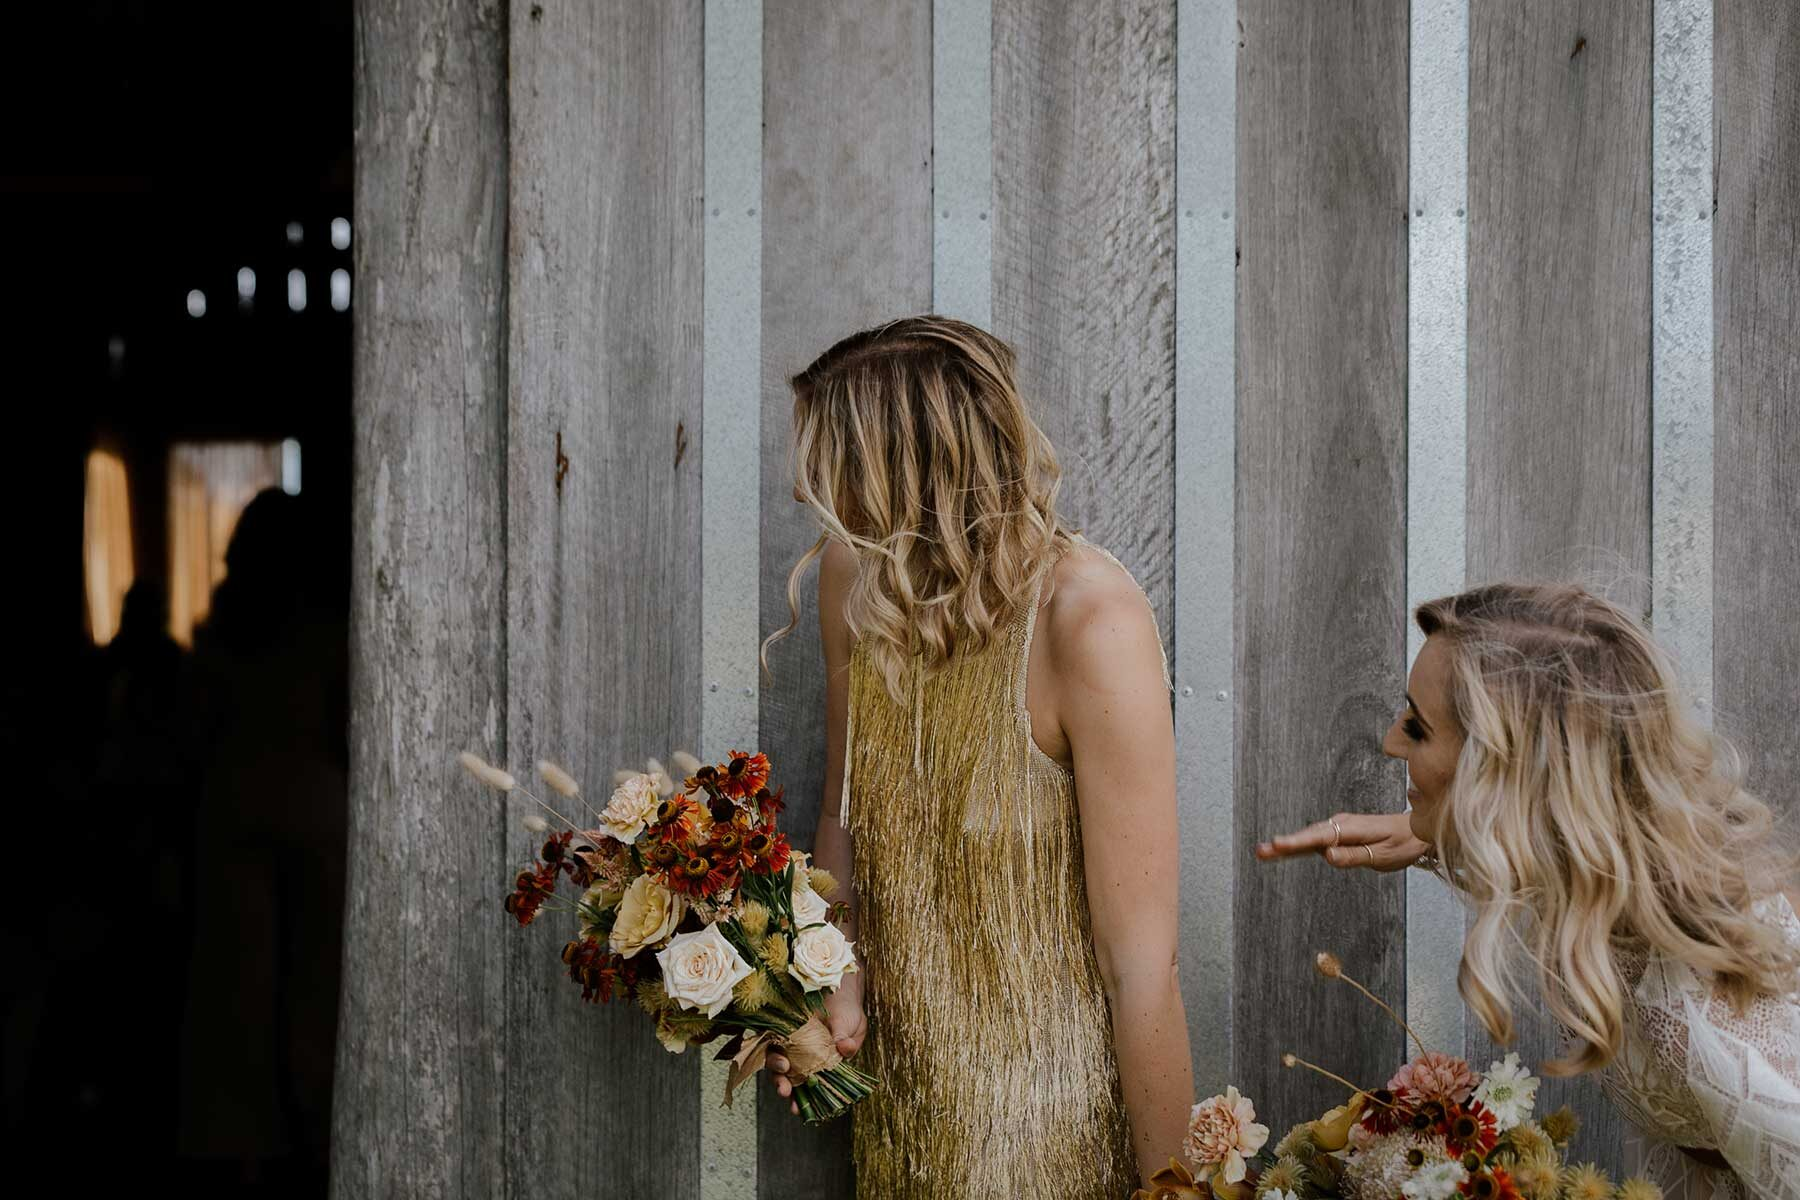 boho vegan festival wedding at Albion Farm Gardens in the Hunter Valley NSW